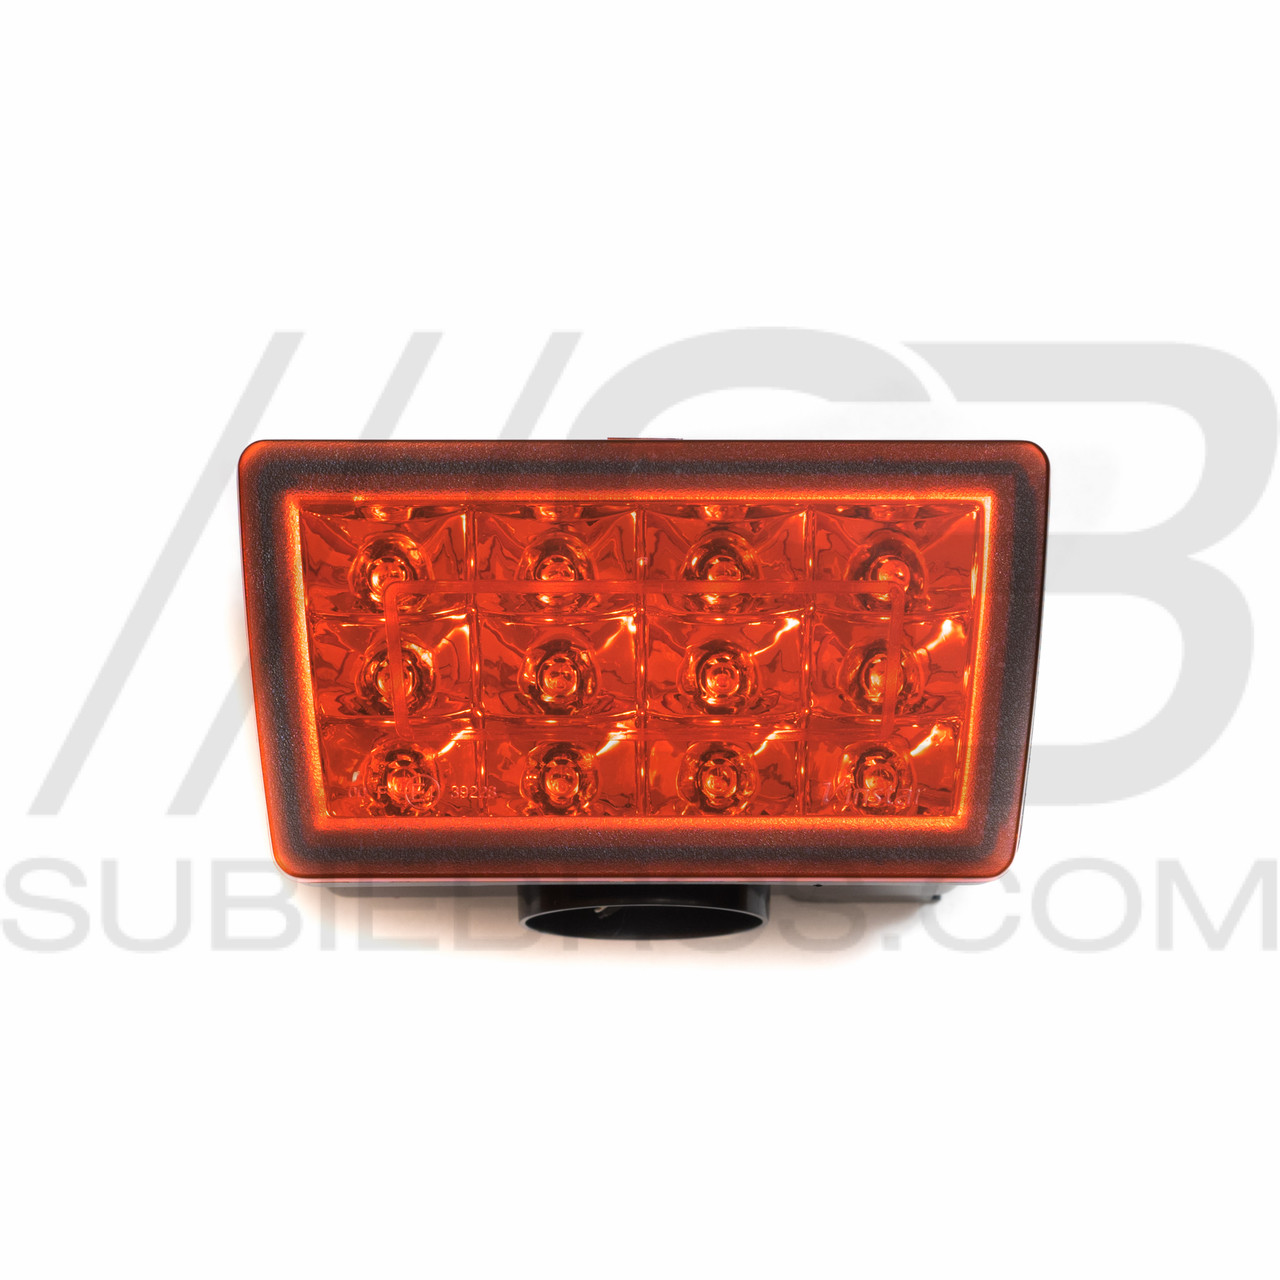 medium resolution of f1 style led rear fog light red clear red smoked matte black subie bros